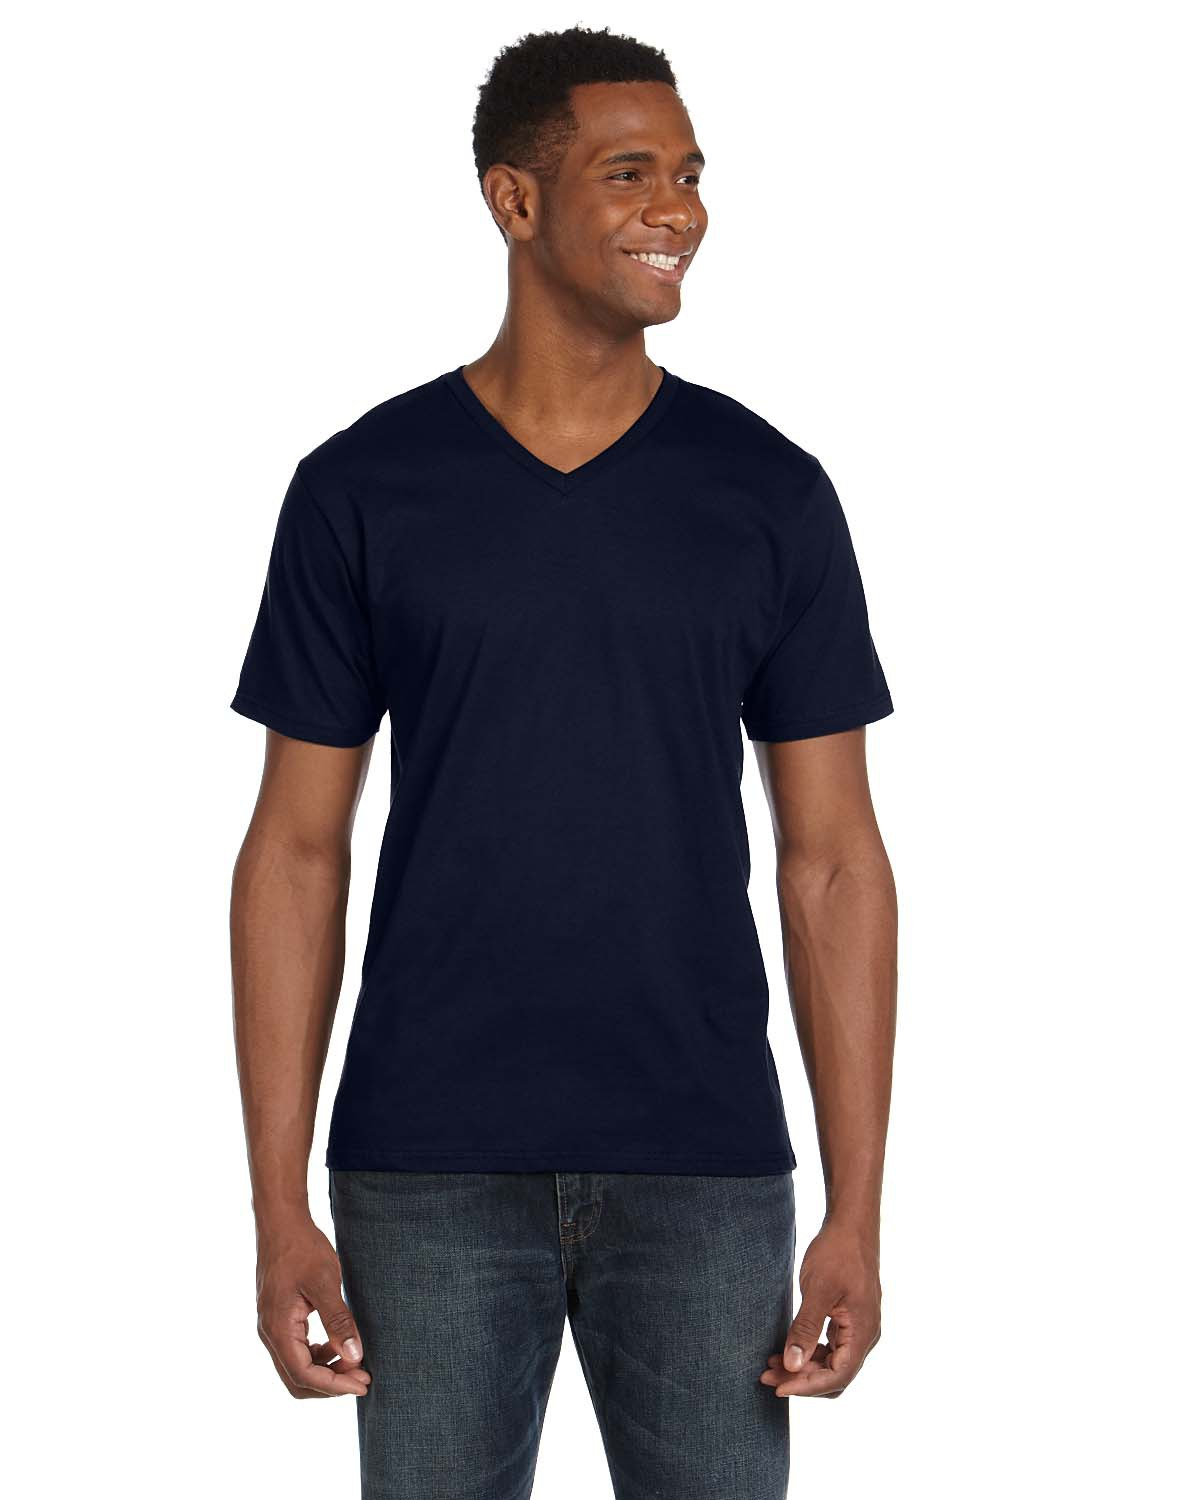 Anvil 982 - Lightweight Fashion V-Neck T-Shirt